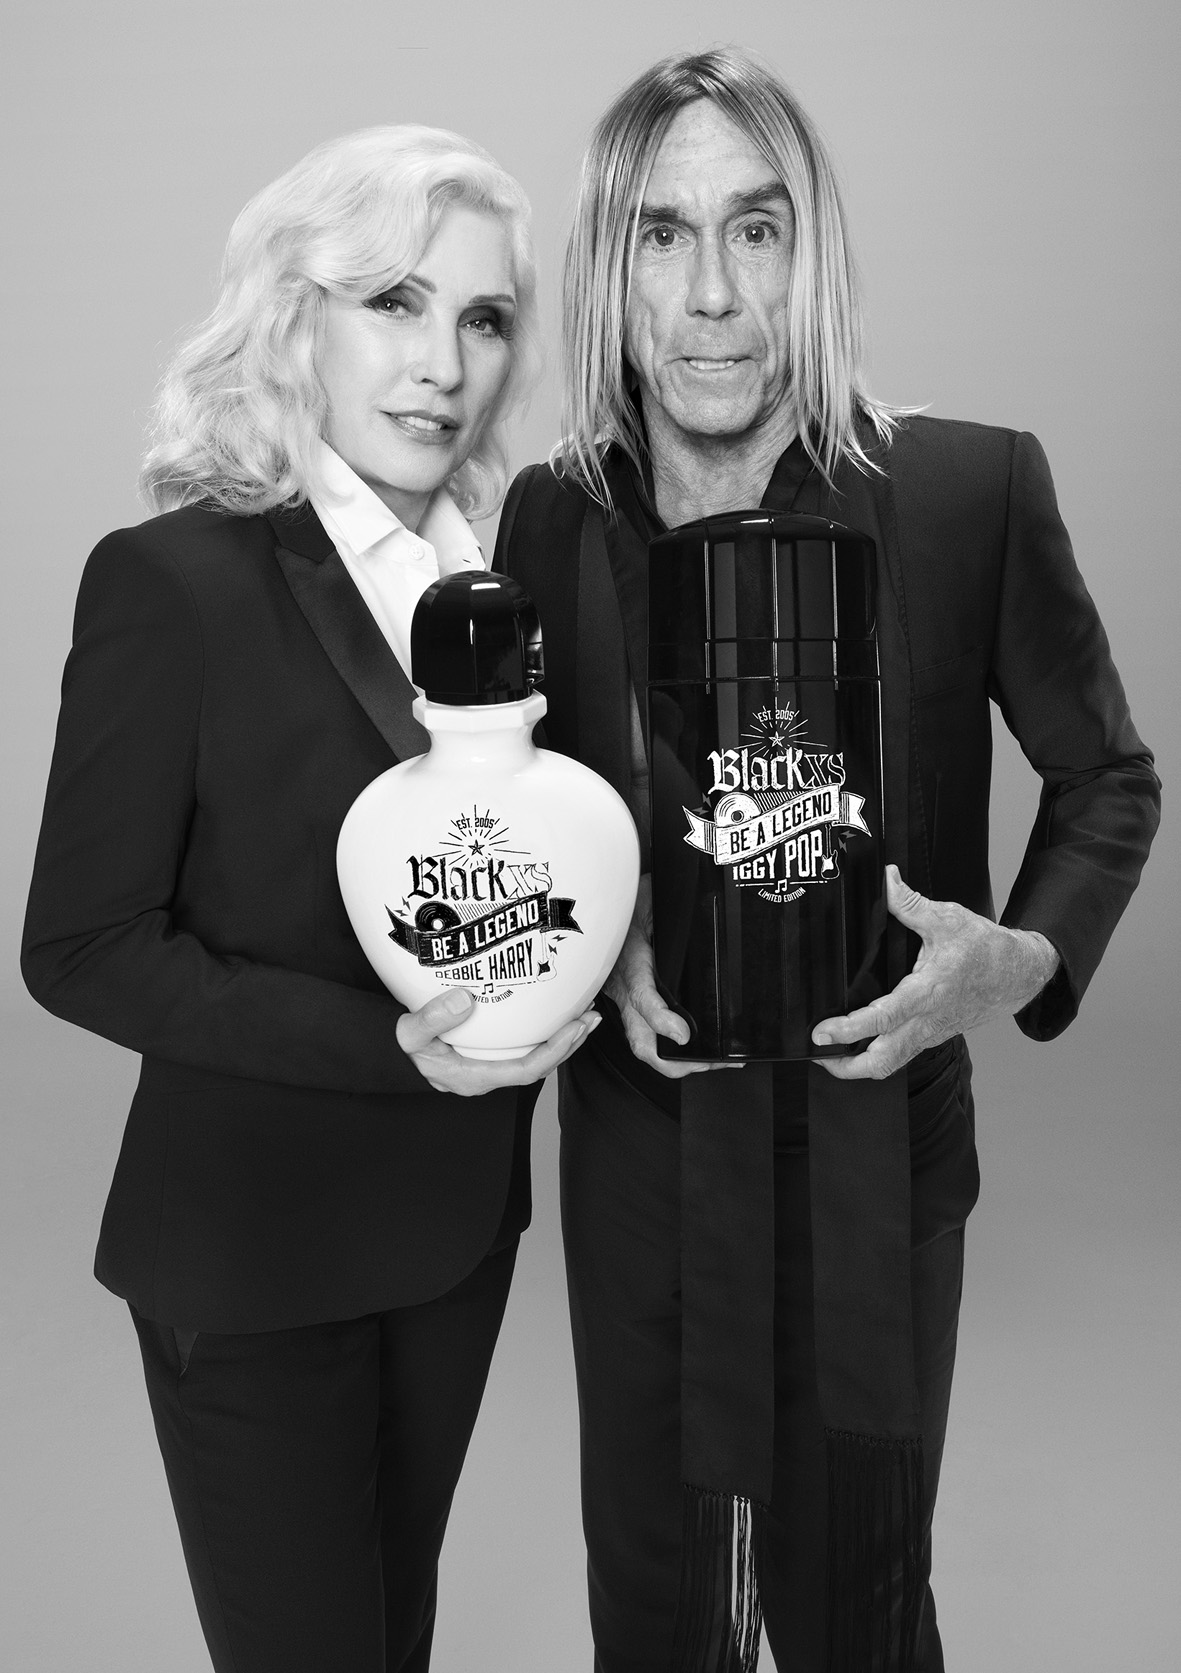 PR_BLACK XS_BE A LEGEND_IGGY POP & DEBBIE HARRY_1